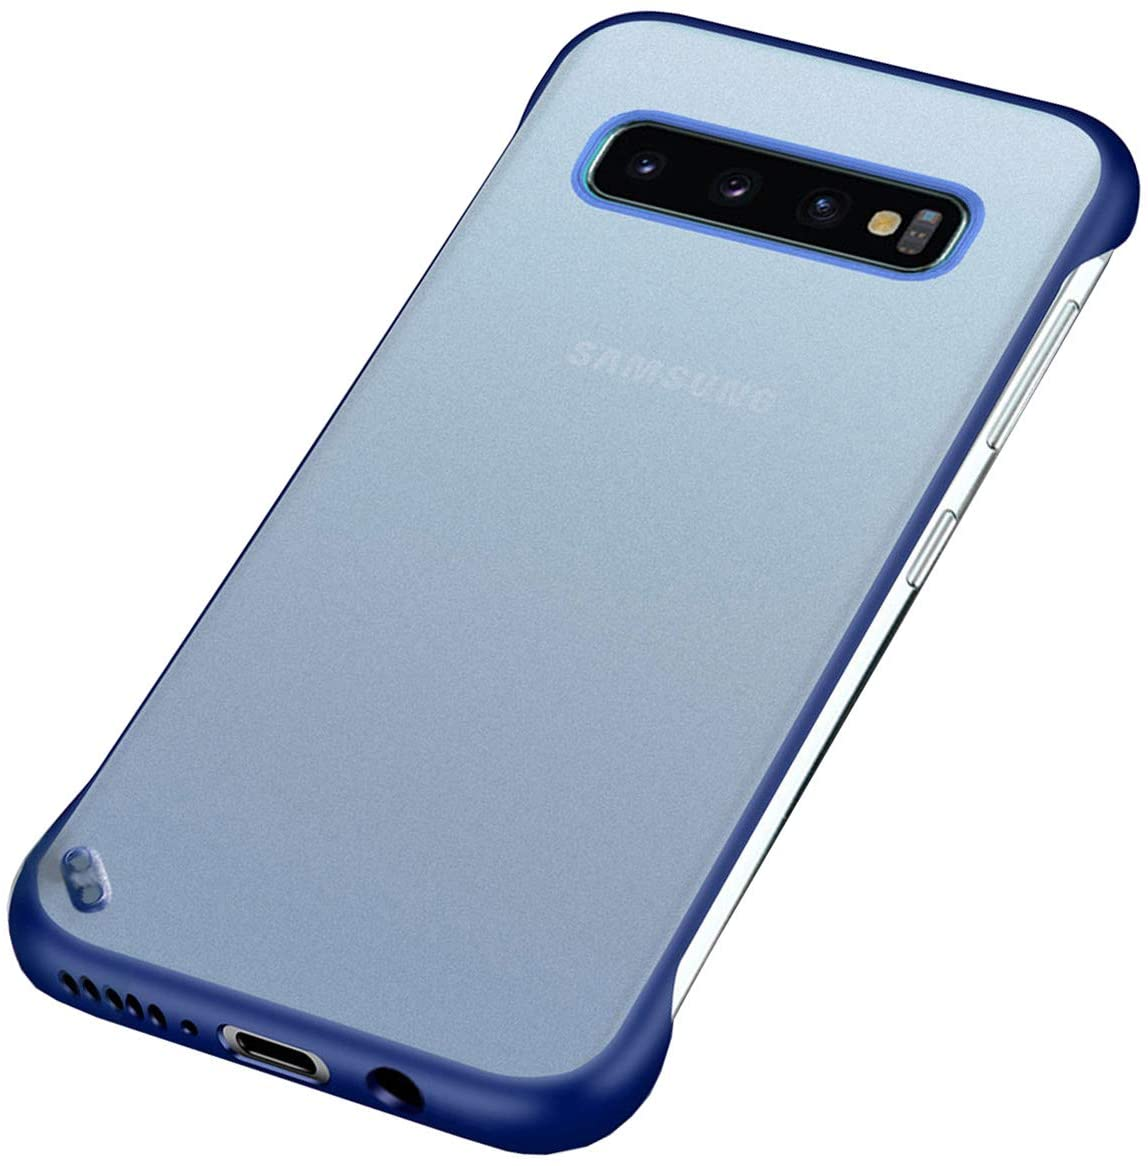 Samsung Galaxy S10 Slim Phone Case, Plastic Matte Hard PC Cover, Lightweight Frameless Design with Reinforced Shockproof Bumper(Blue,17)